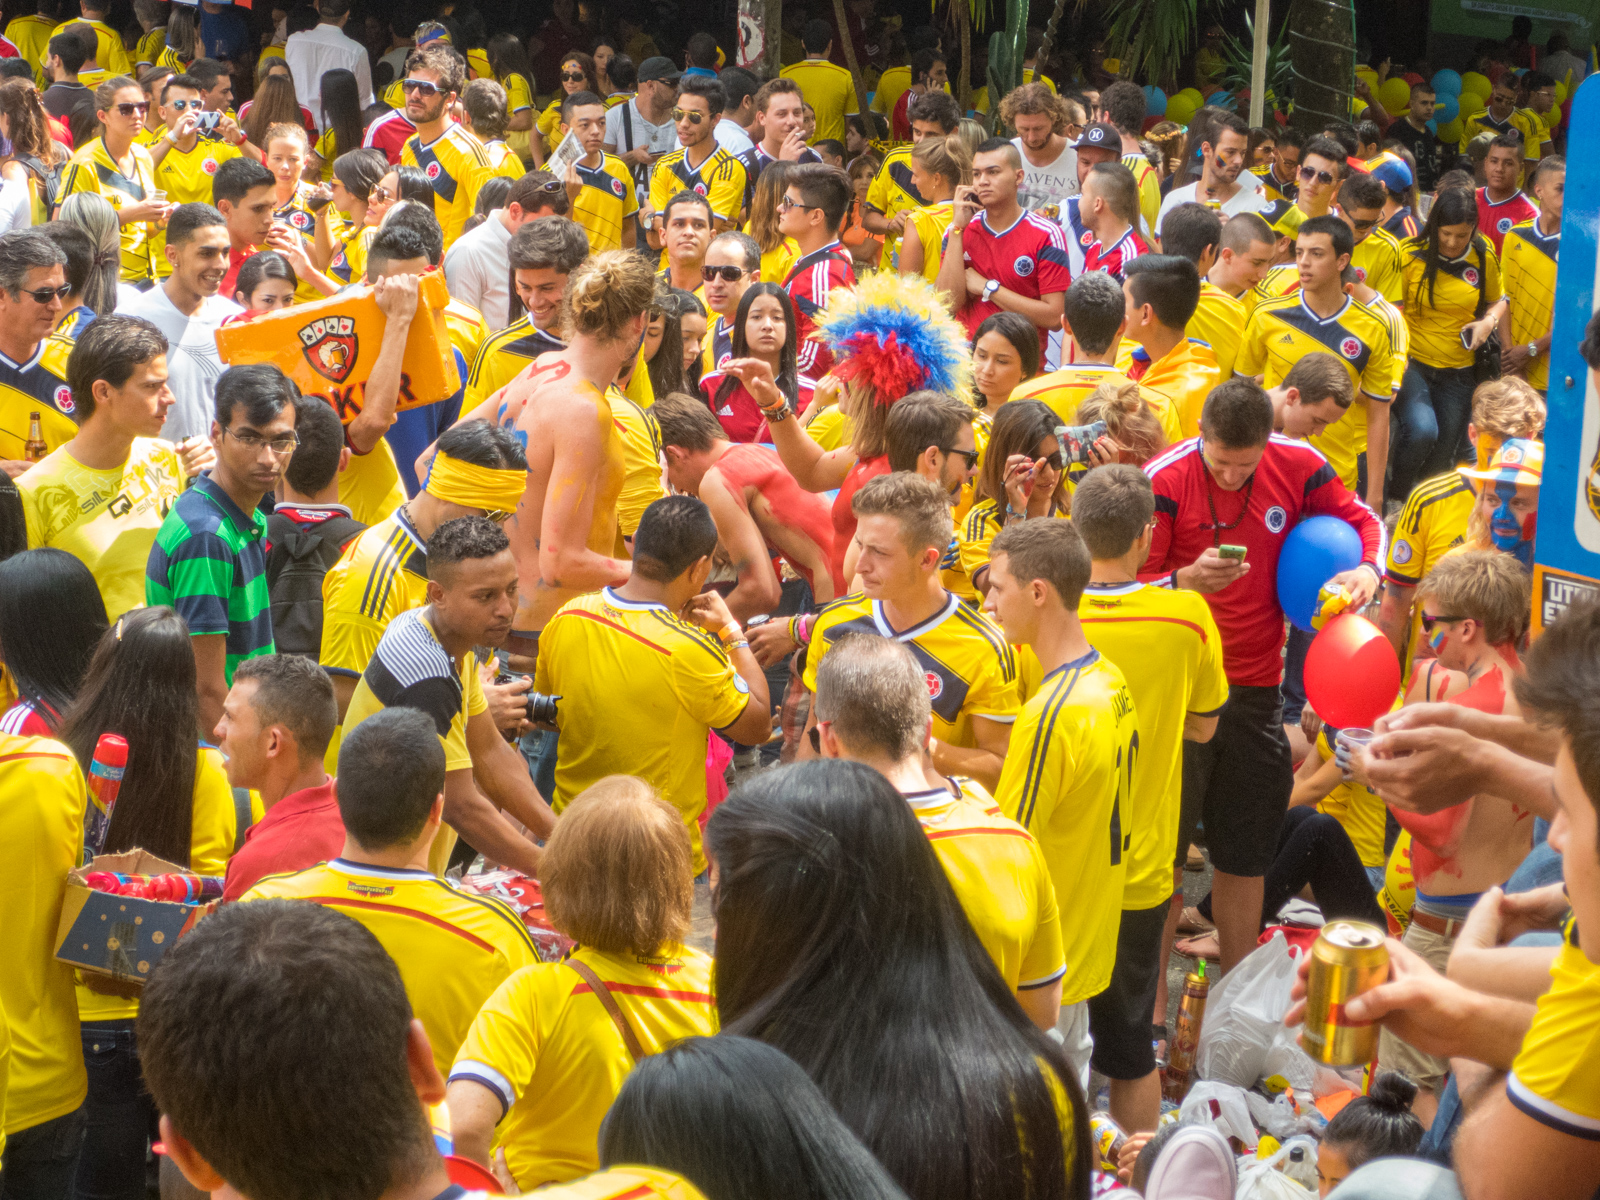 The crowd at a 2014 World Cup watch party in Parque Lleras, Medellin